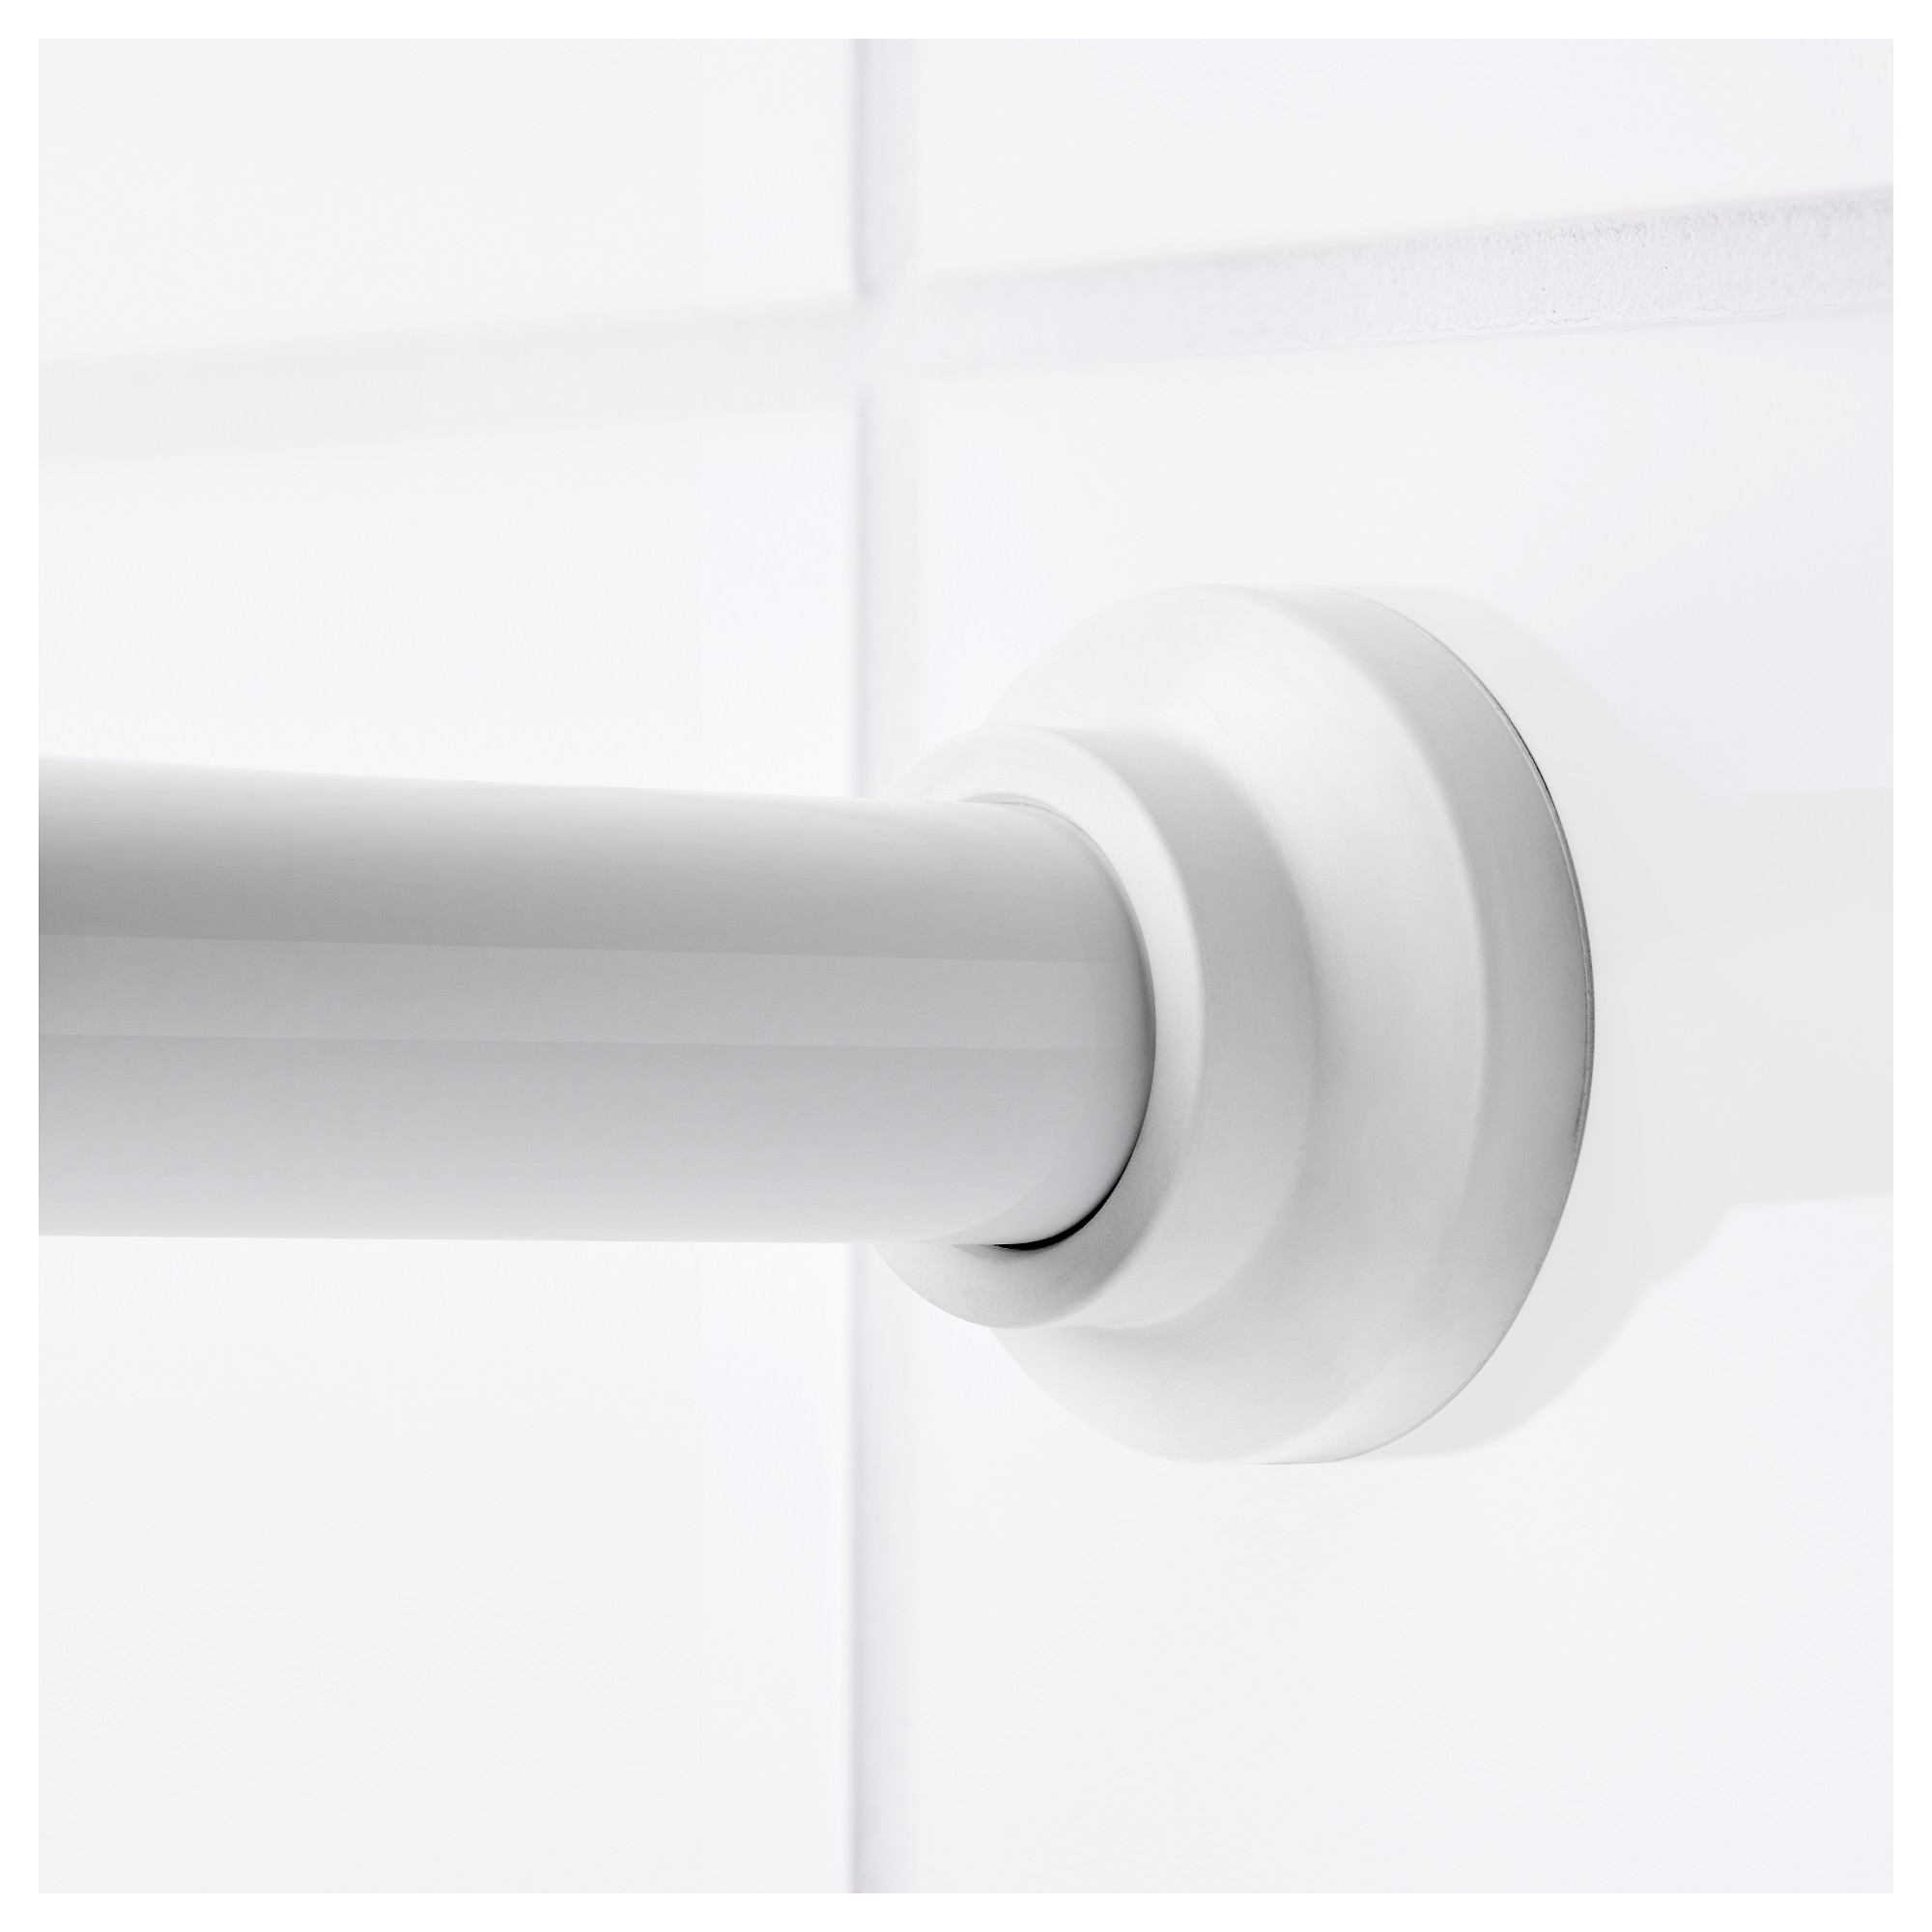 White Shower Curtain Rod.Ikea Lithuania Shop For Furniture Lighting Home